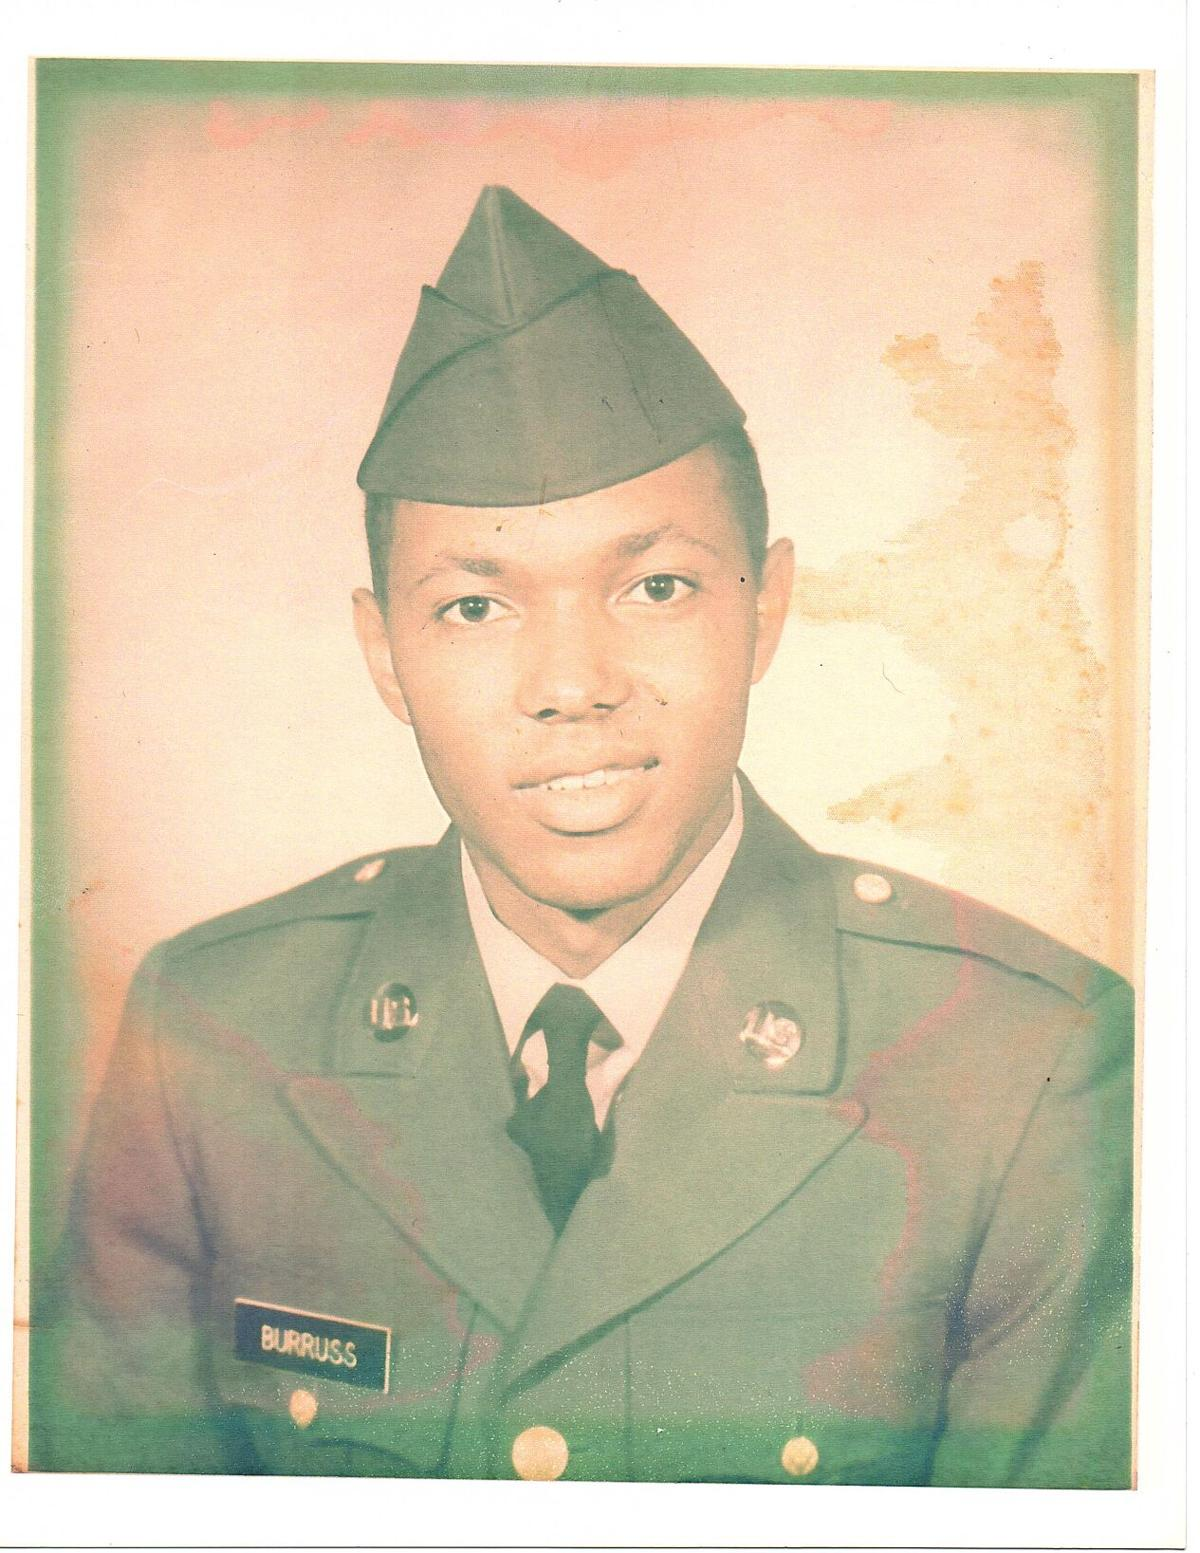 After tragedy, a veteran carries on: The service of Charles M. Burruss Sr.